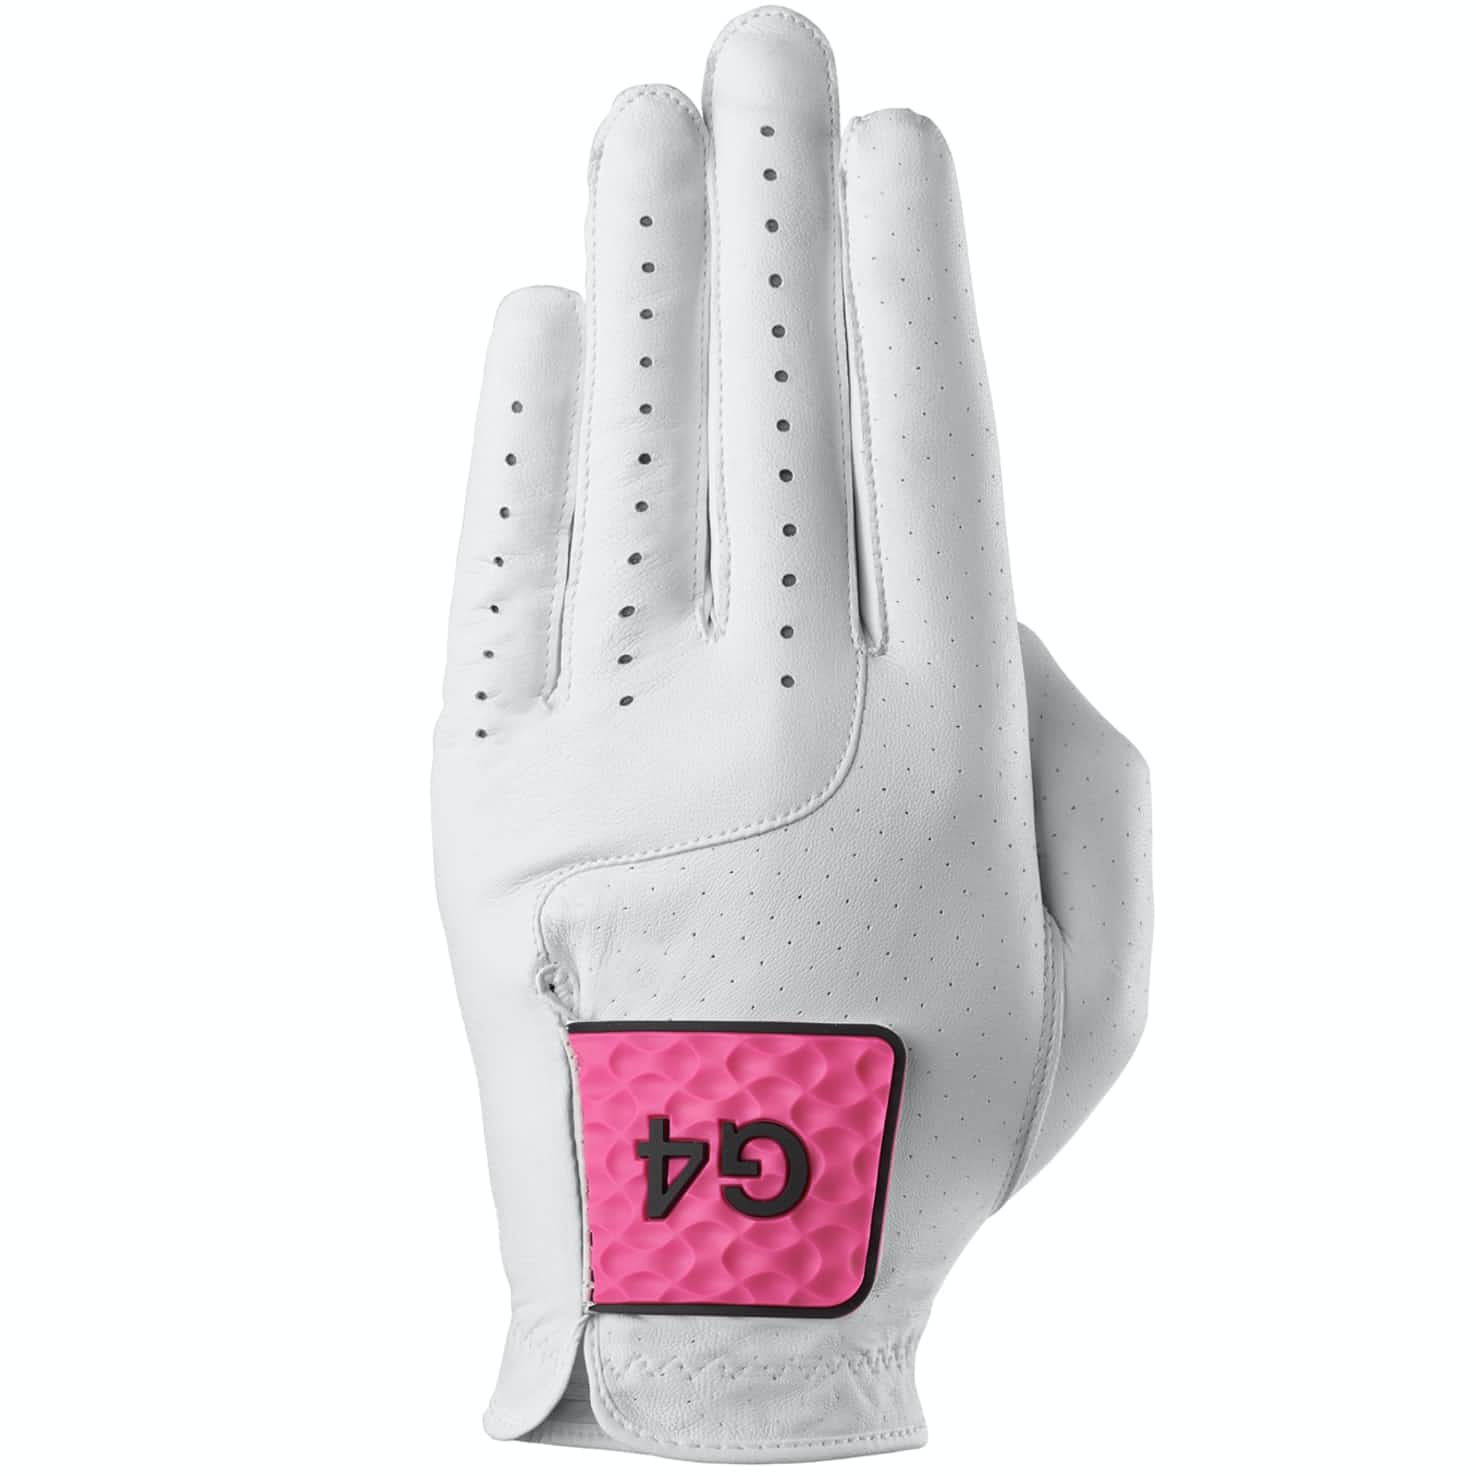 MG4.1 Left Glove Snow/Day Glo Pink - 2020